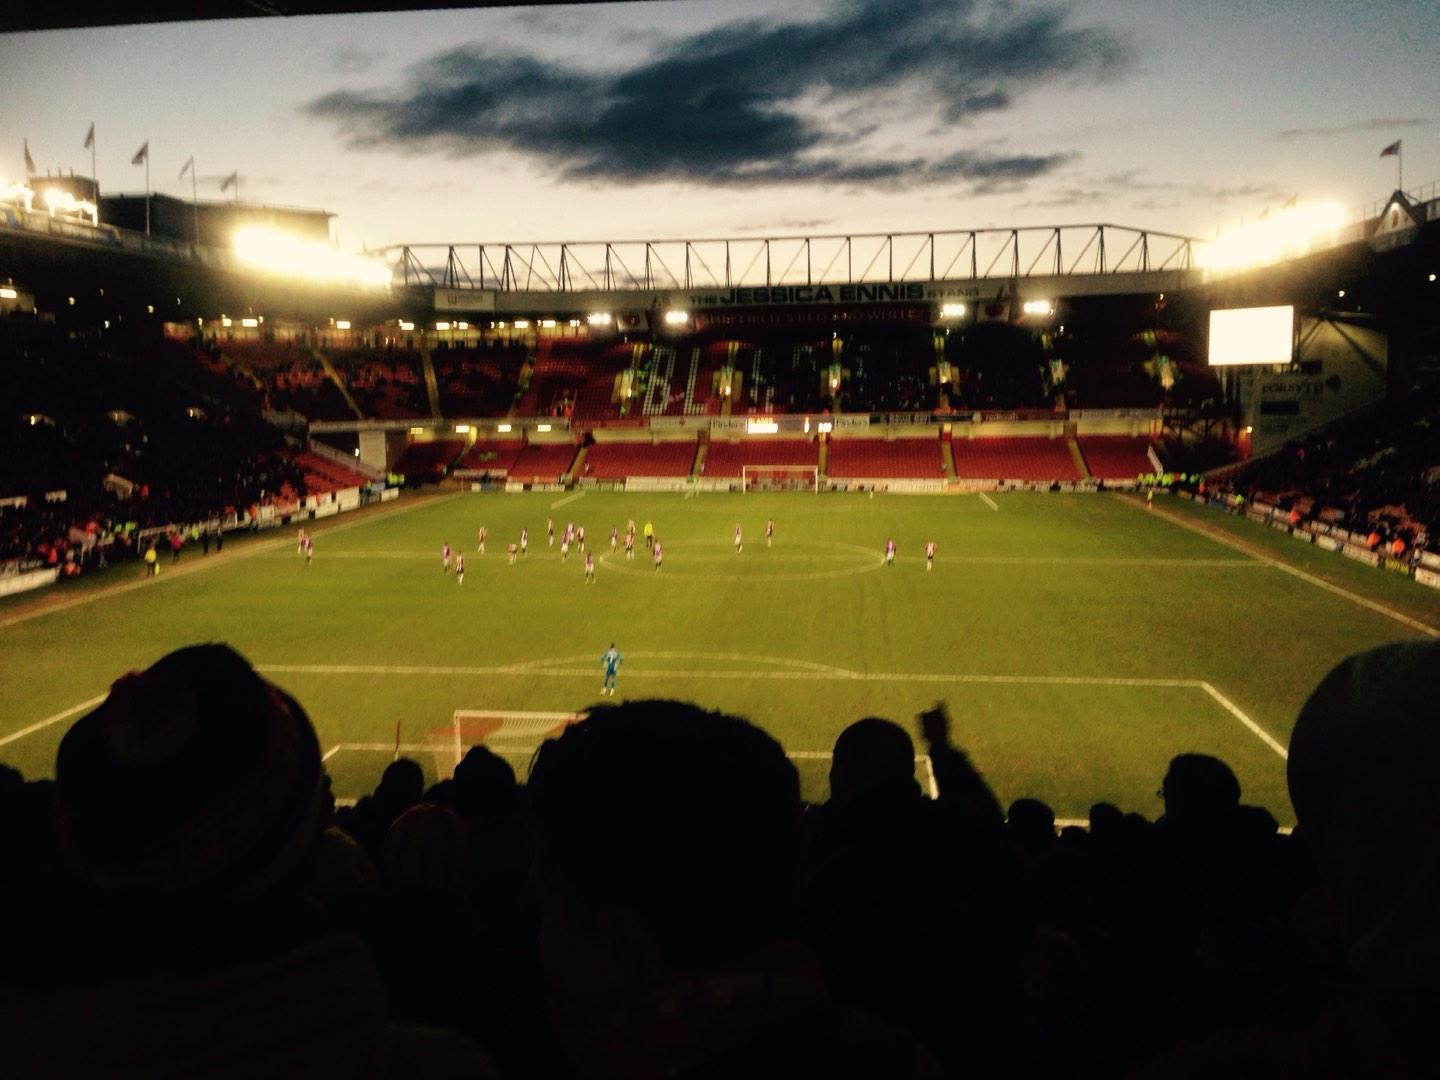 Bramall Lane Section Kop Stand Gangway E Row QQ Seat 119